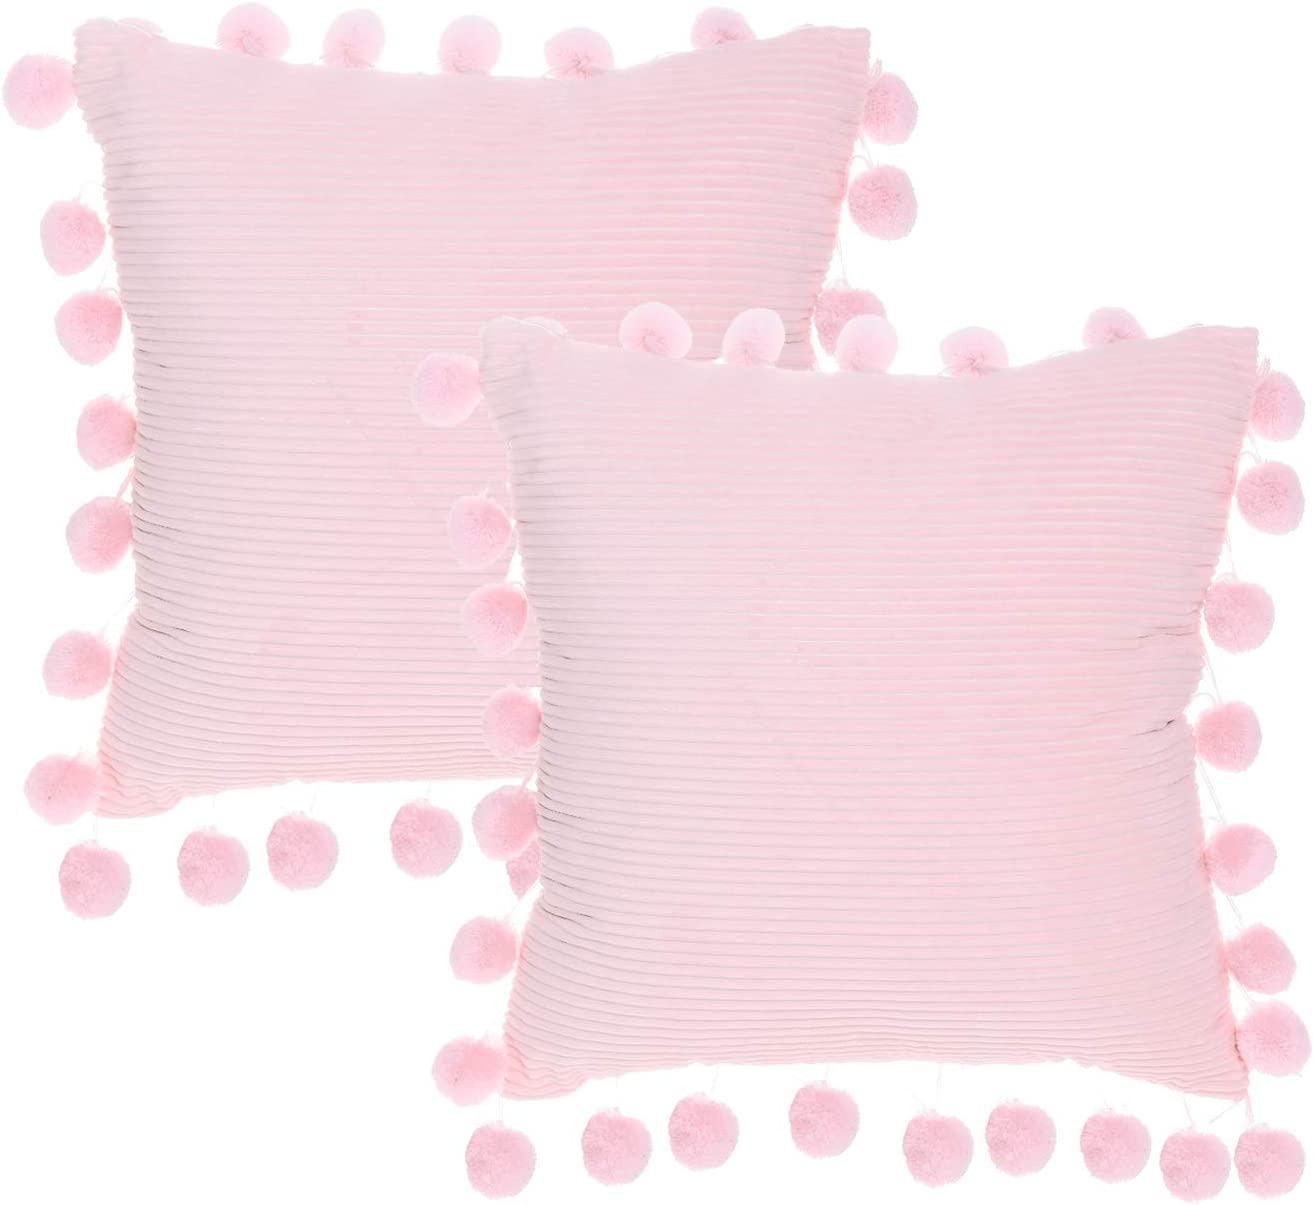 NSSONBEN Pink Pom Pom Pillow Covers   Soft Velvet Decorative Cushion Cases  for Couch Home 112 x 112 Inch Set of 12 Pink